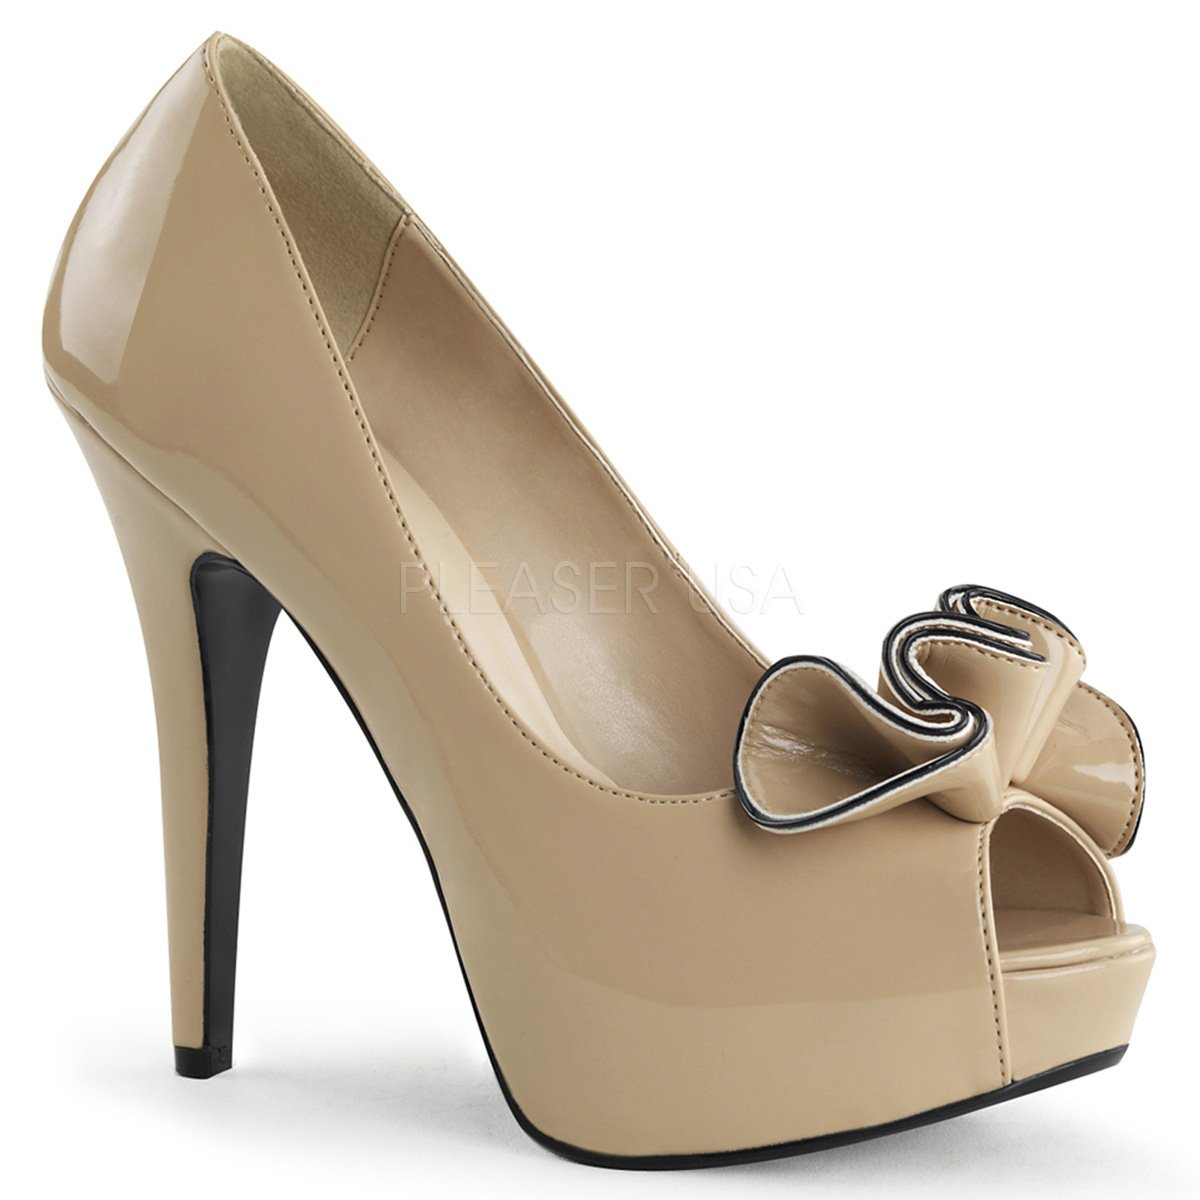 LOLITA-10 - LOLITA-10 Pleaser USA Shoes Cream Shoes USA/Cream be49b38 - gis9ma7le.space